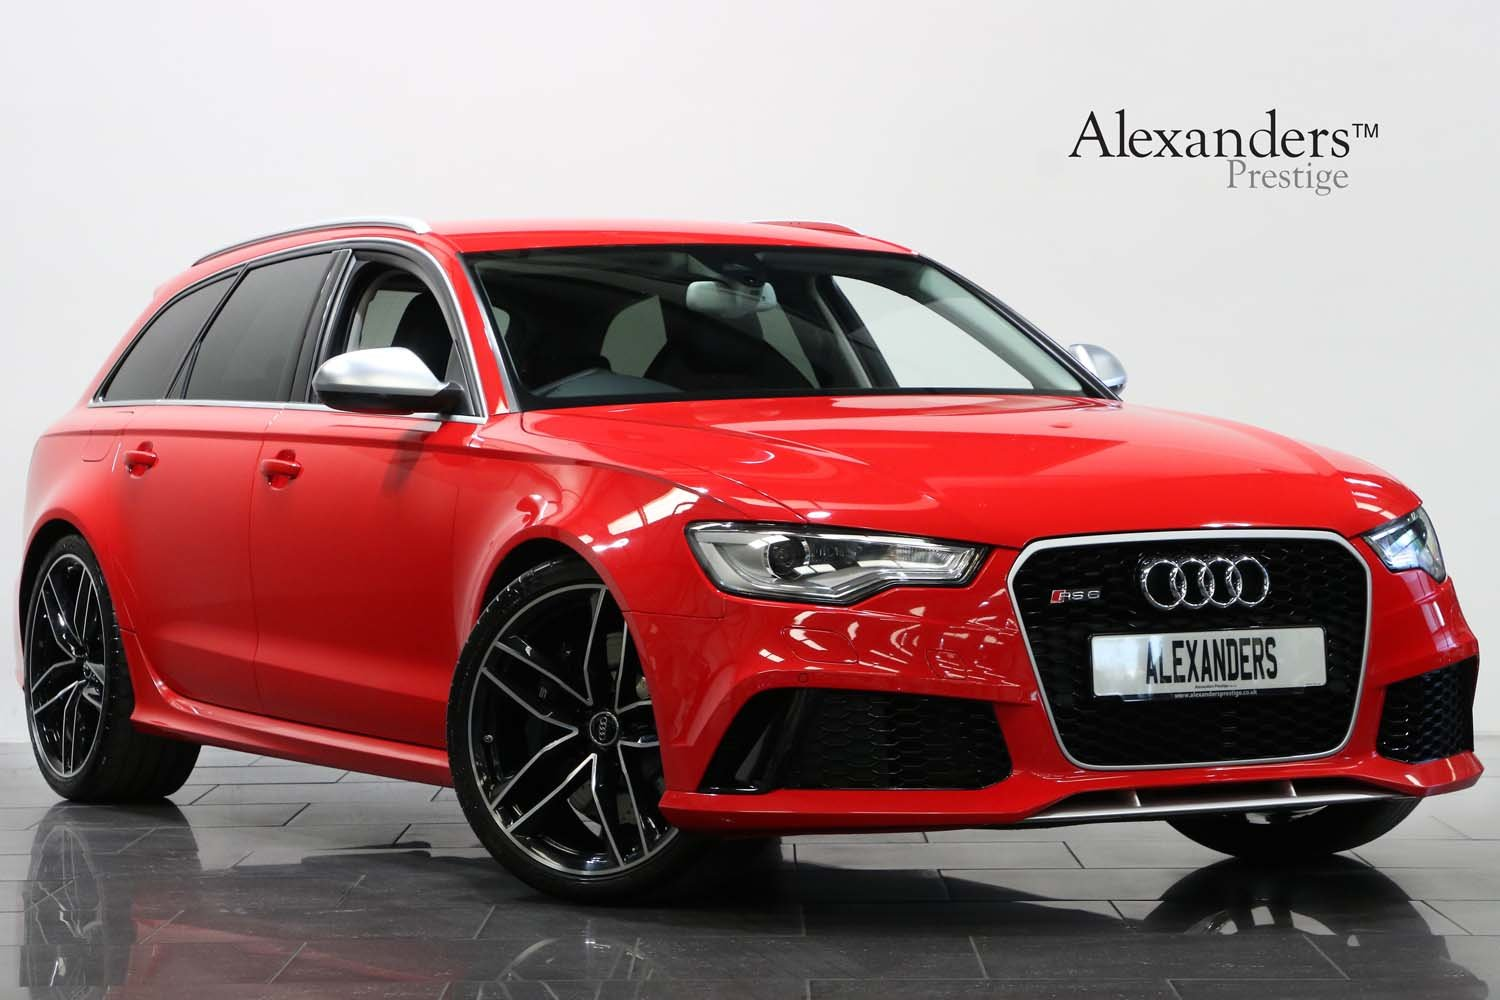 2014 14 64 AUDI RS6 AVANT 4.0T V8 FSI AUTO For Sale (picture 1 of 6)